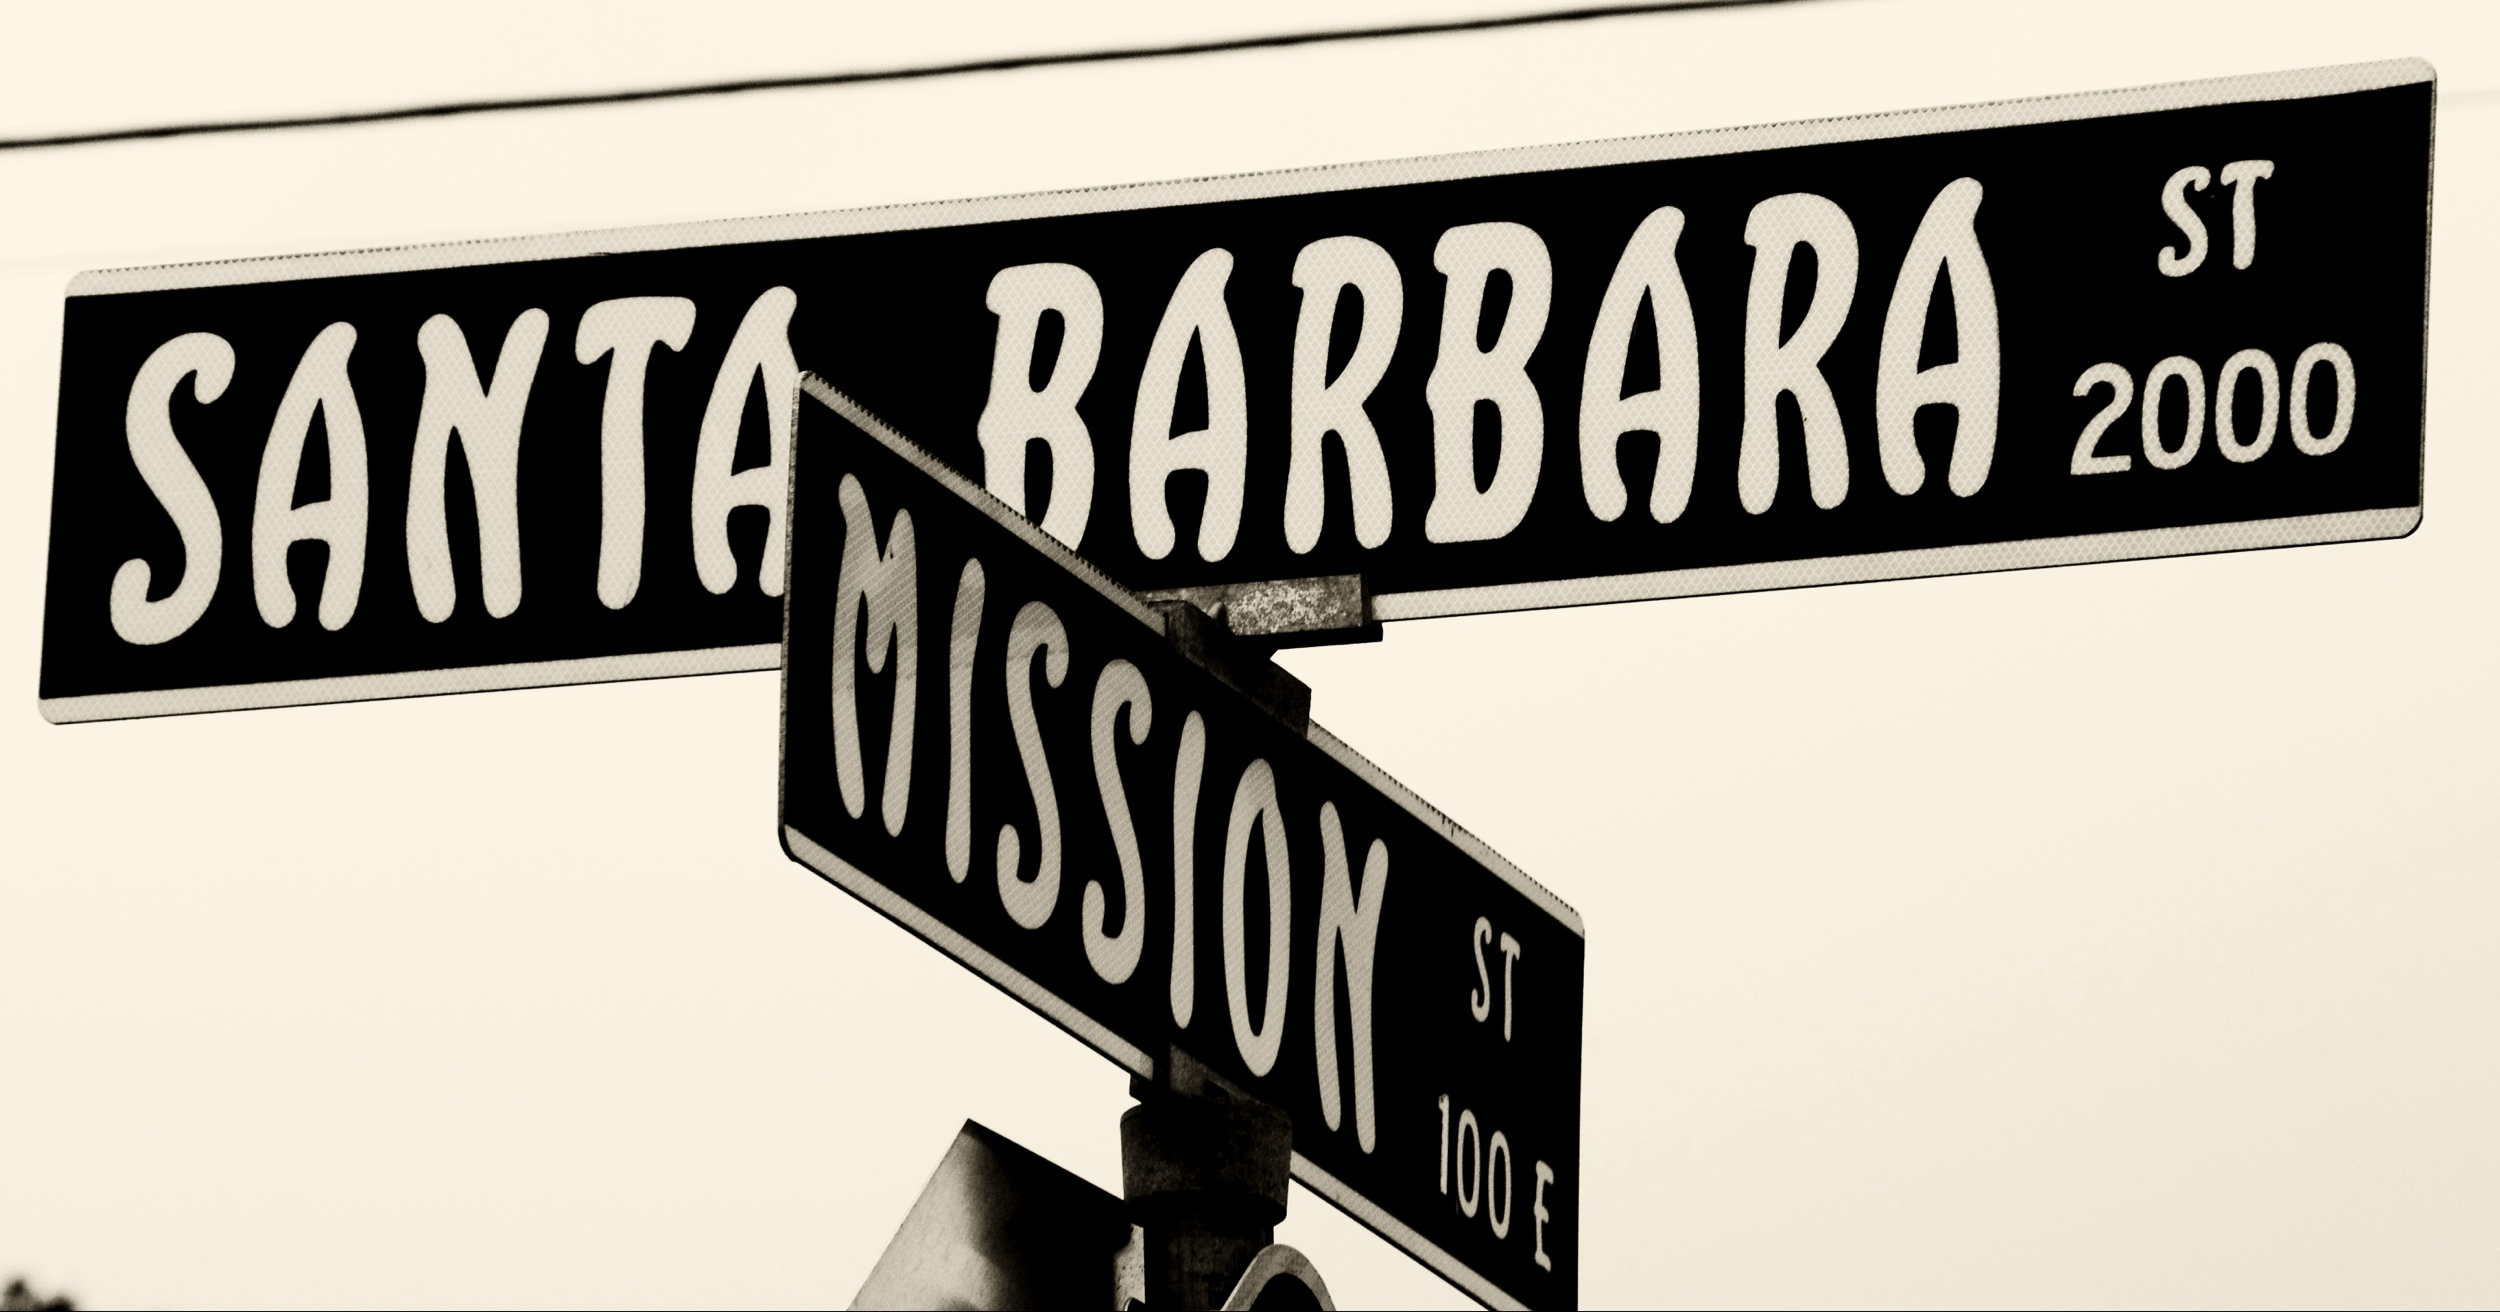 Mission and state street sign